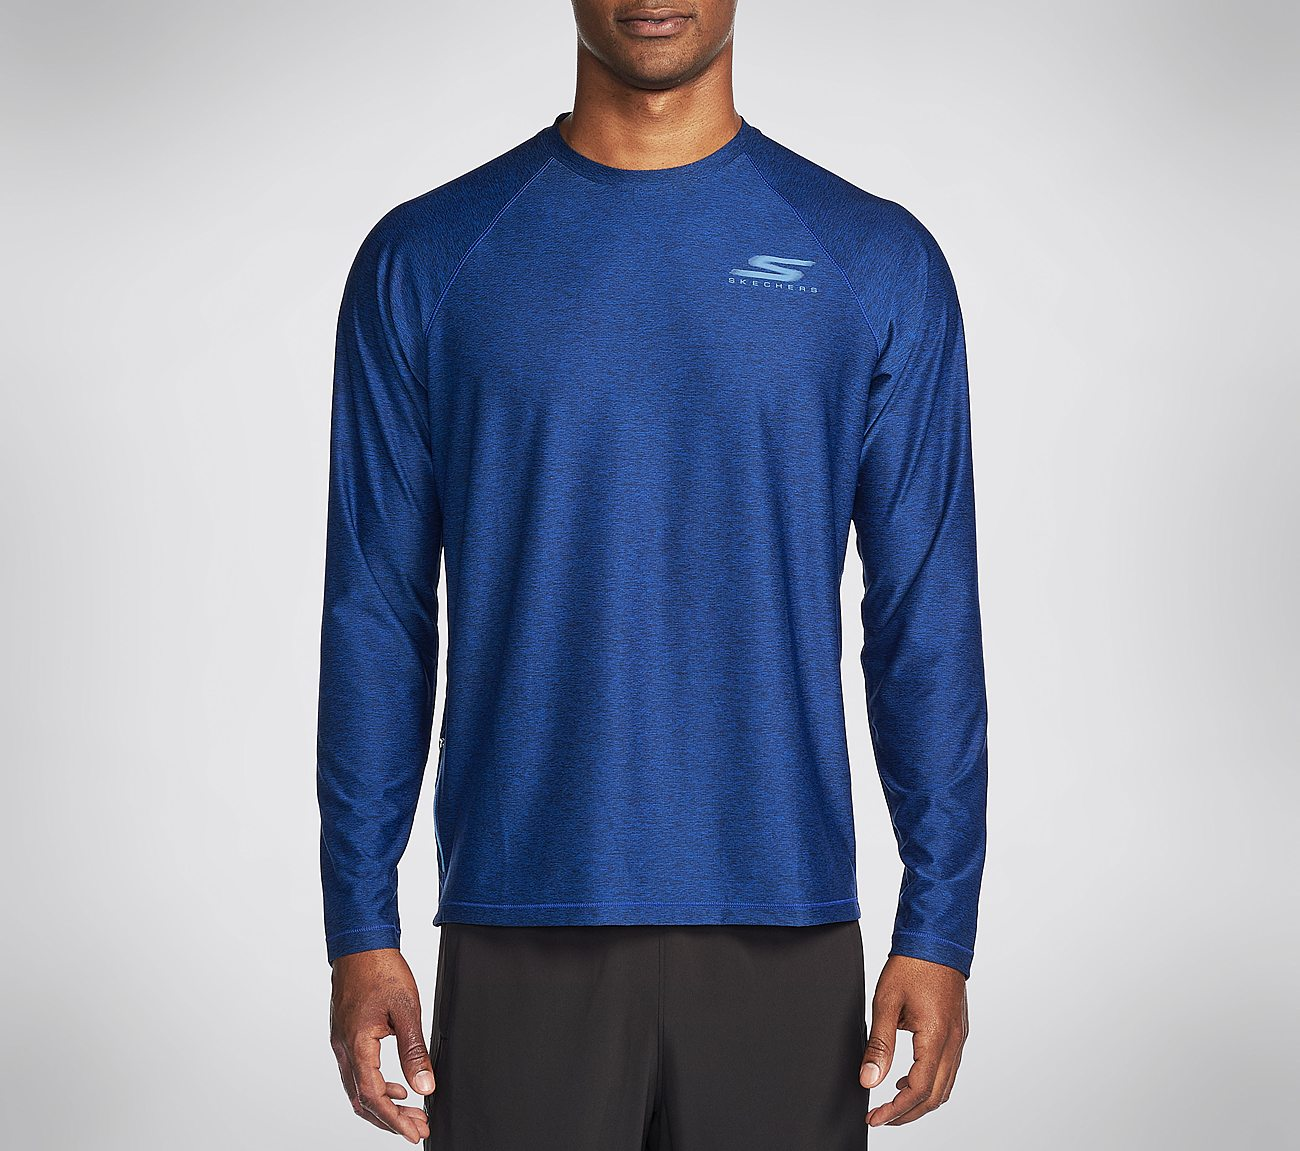 Buy Skechers Solar Long Sleeve Crew Neck Shirt Fifty Percent Off